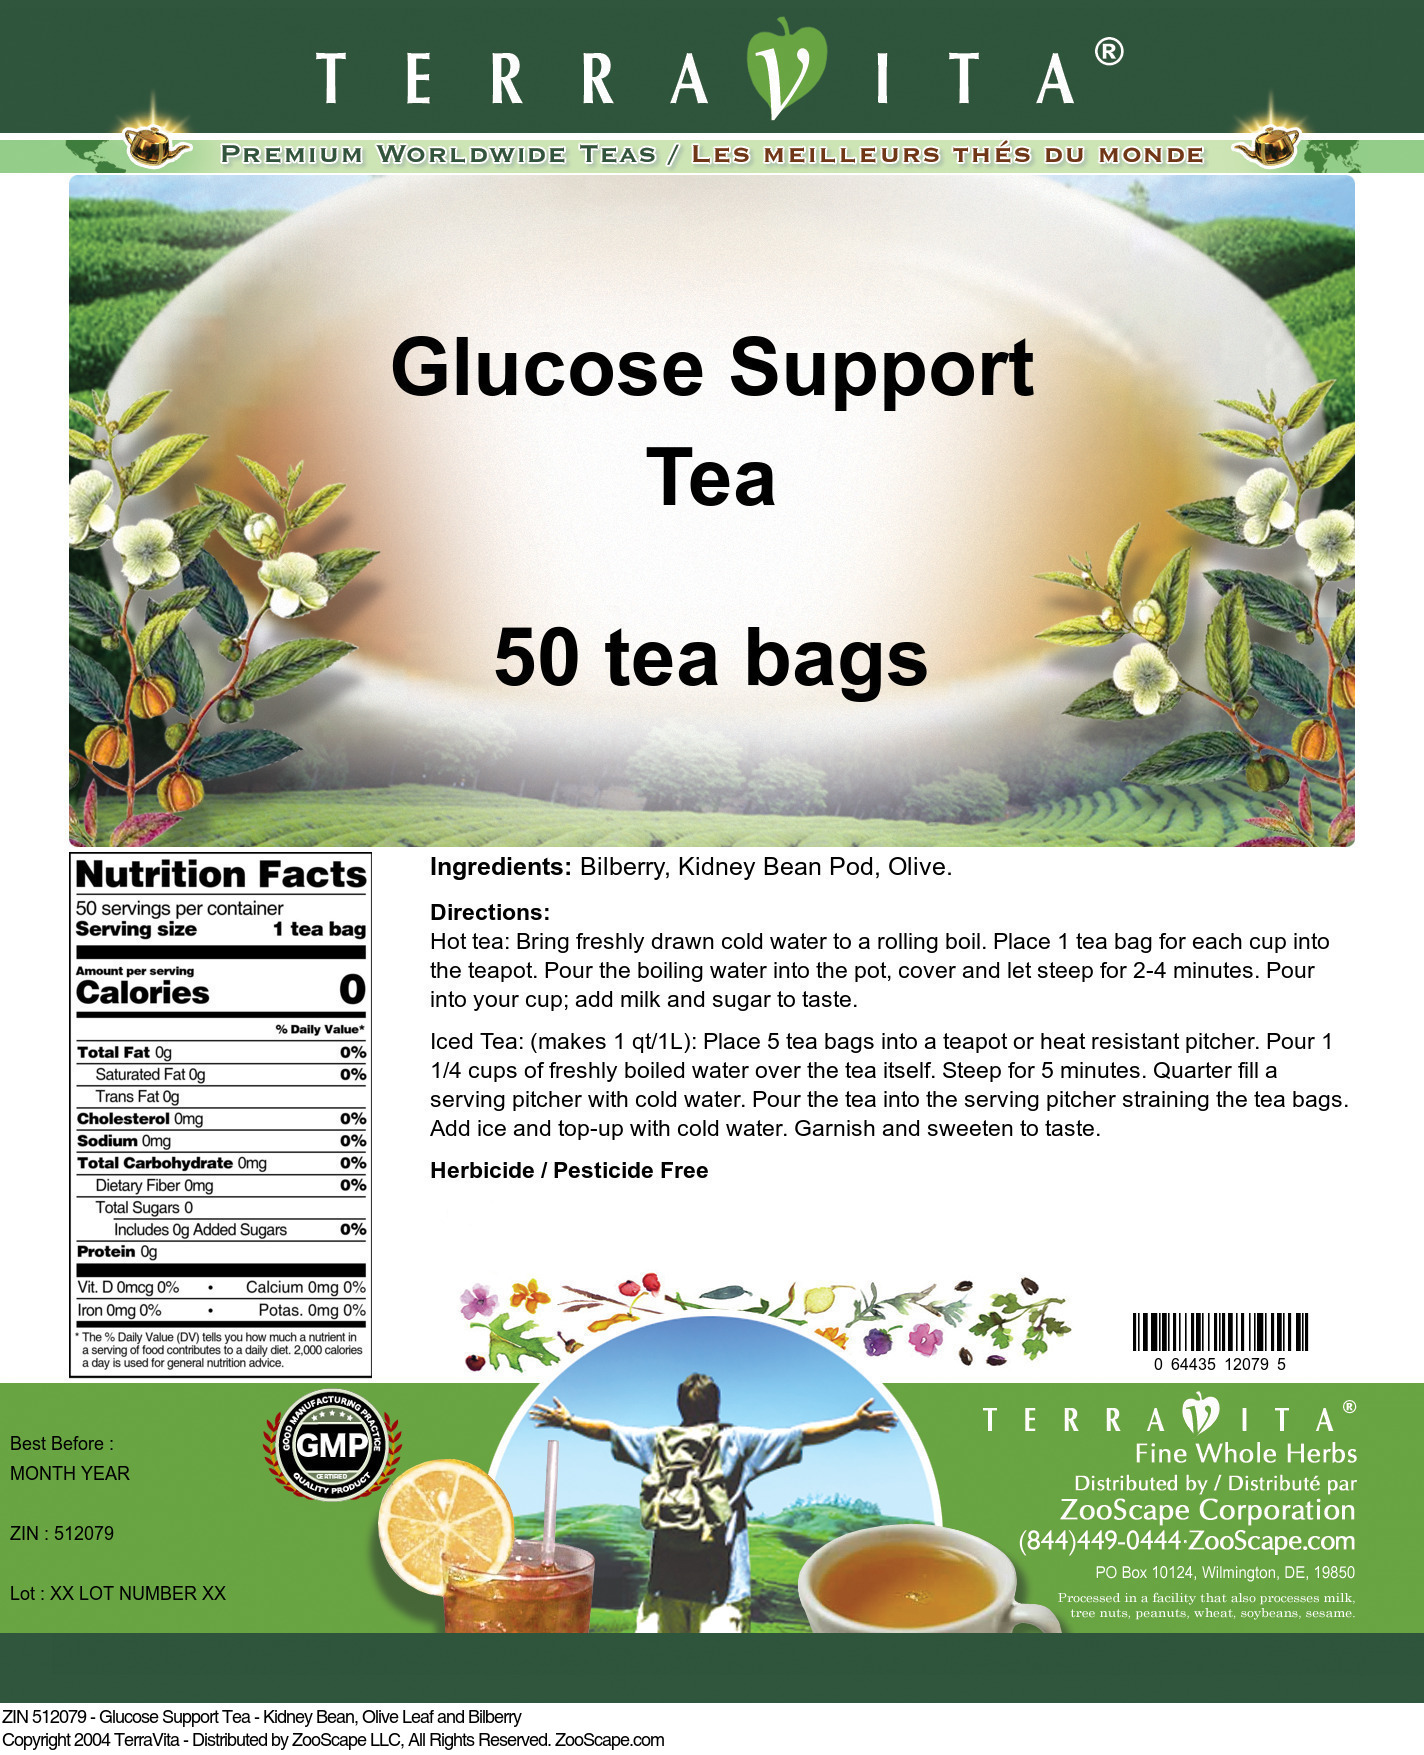 Glucose Support Tea - Kidney Bean, Olive Leaf and Bilberry